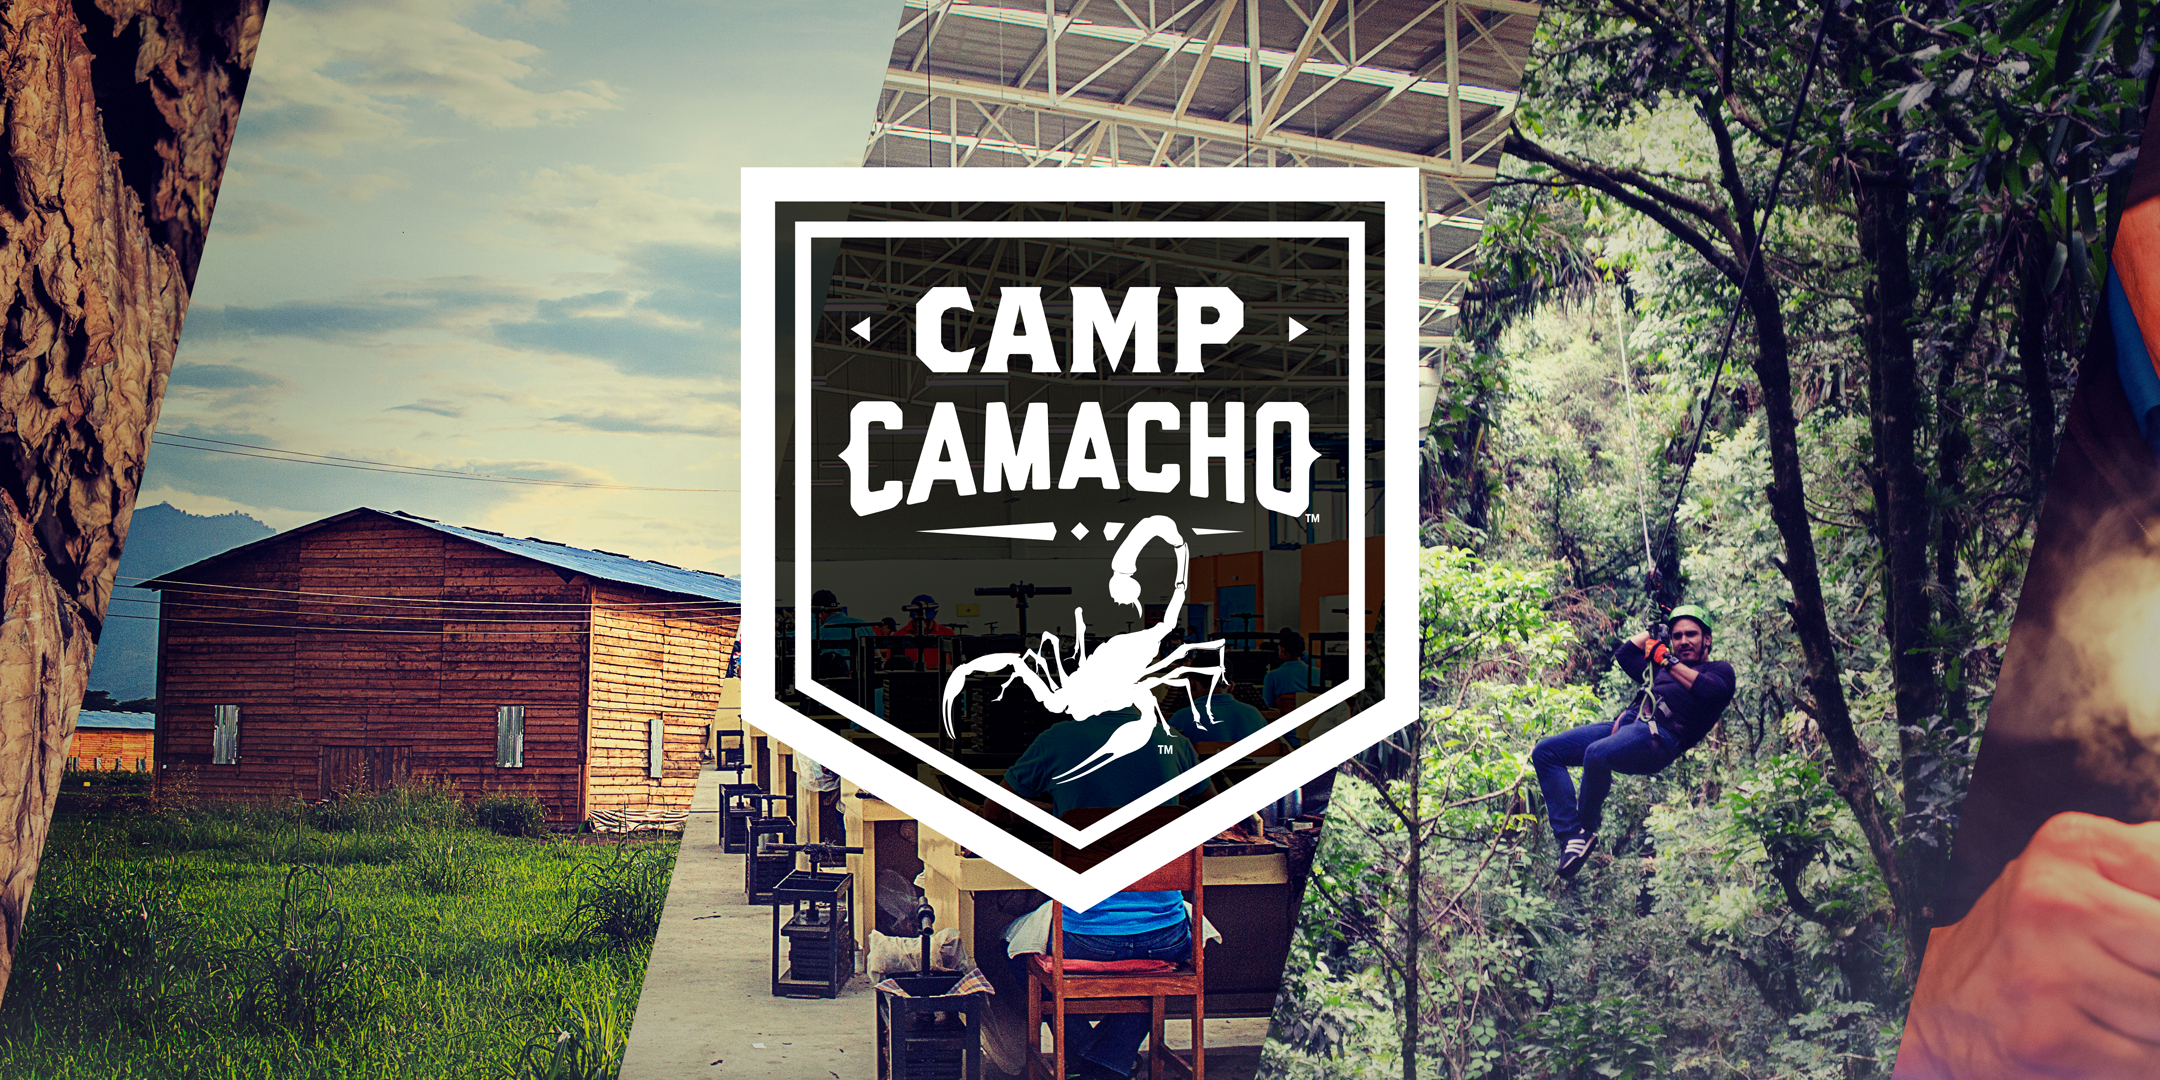 Camp Camacho Factory Experience